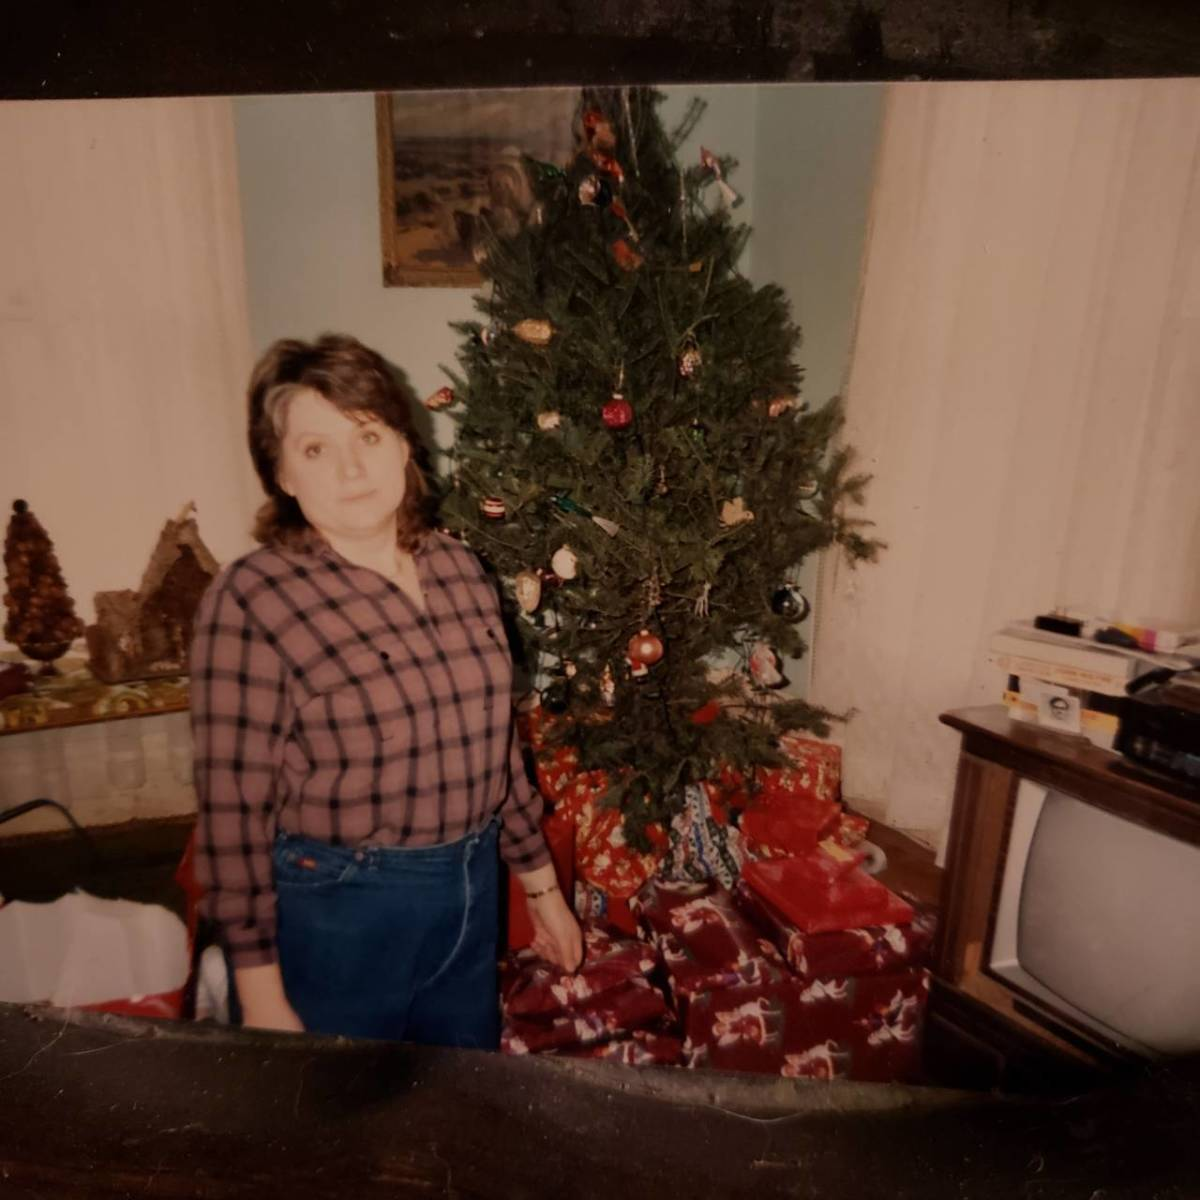 Connie next to Christmas tree and gifts.  Probably Christmas 1985.